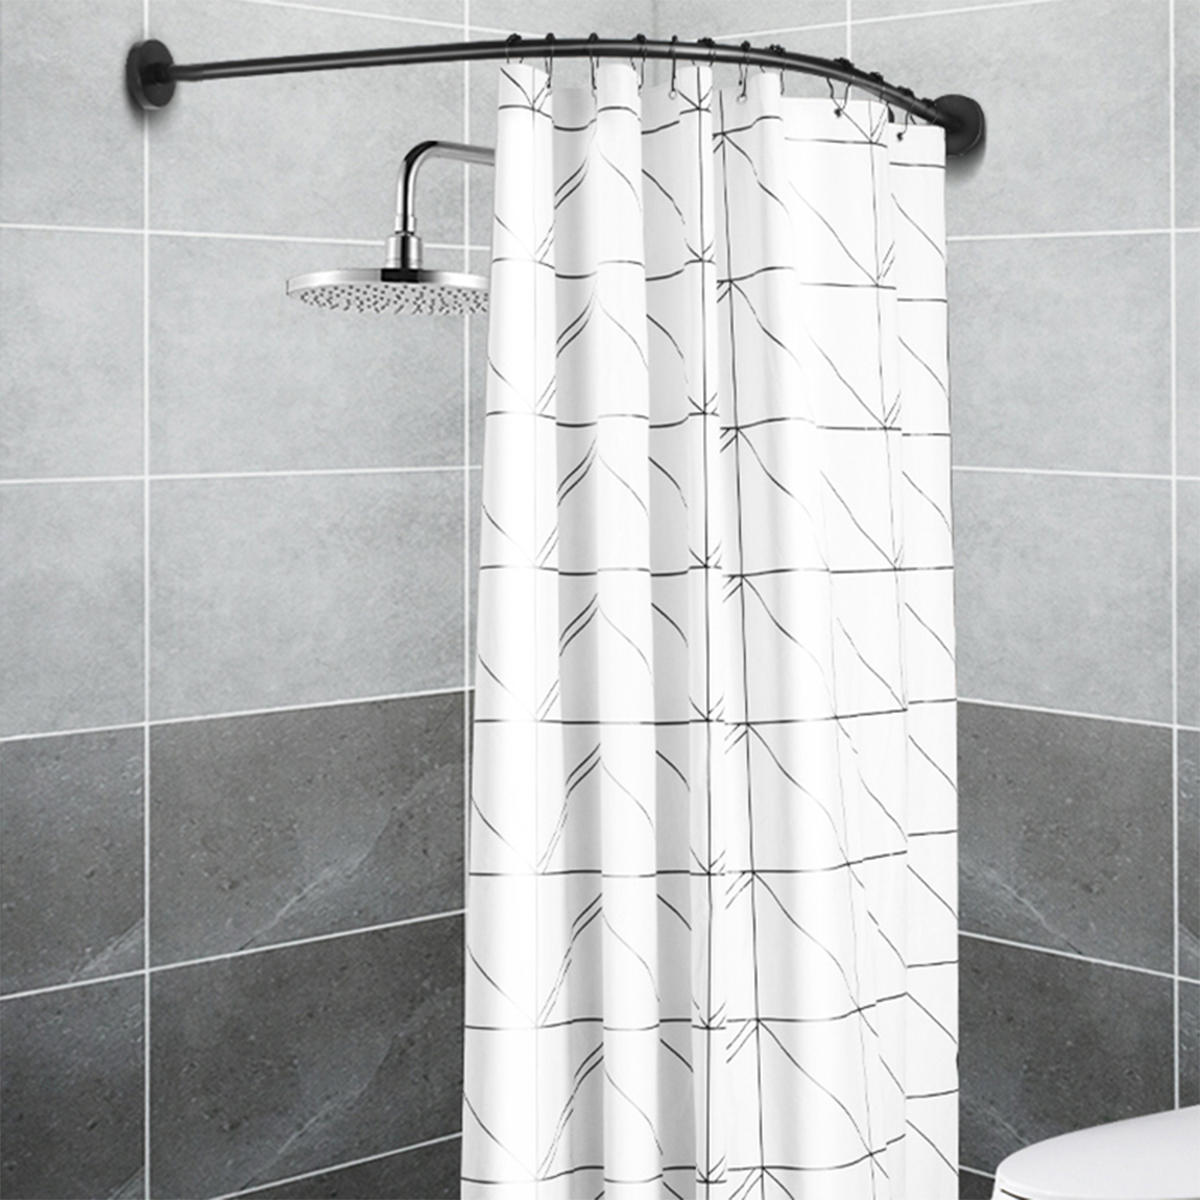 Stainless Steel Shower Curtain Rod.L Shape Adjustable Stainless Steel Shower Curtain Rod Pole 90 130cm Retractable